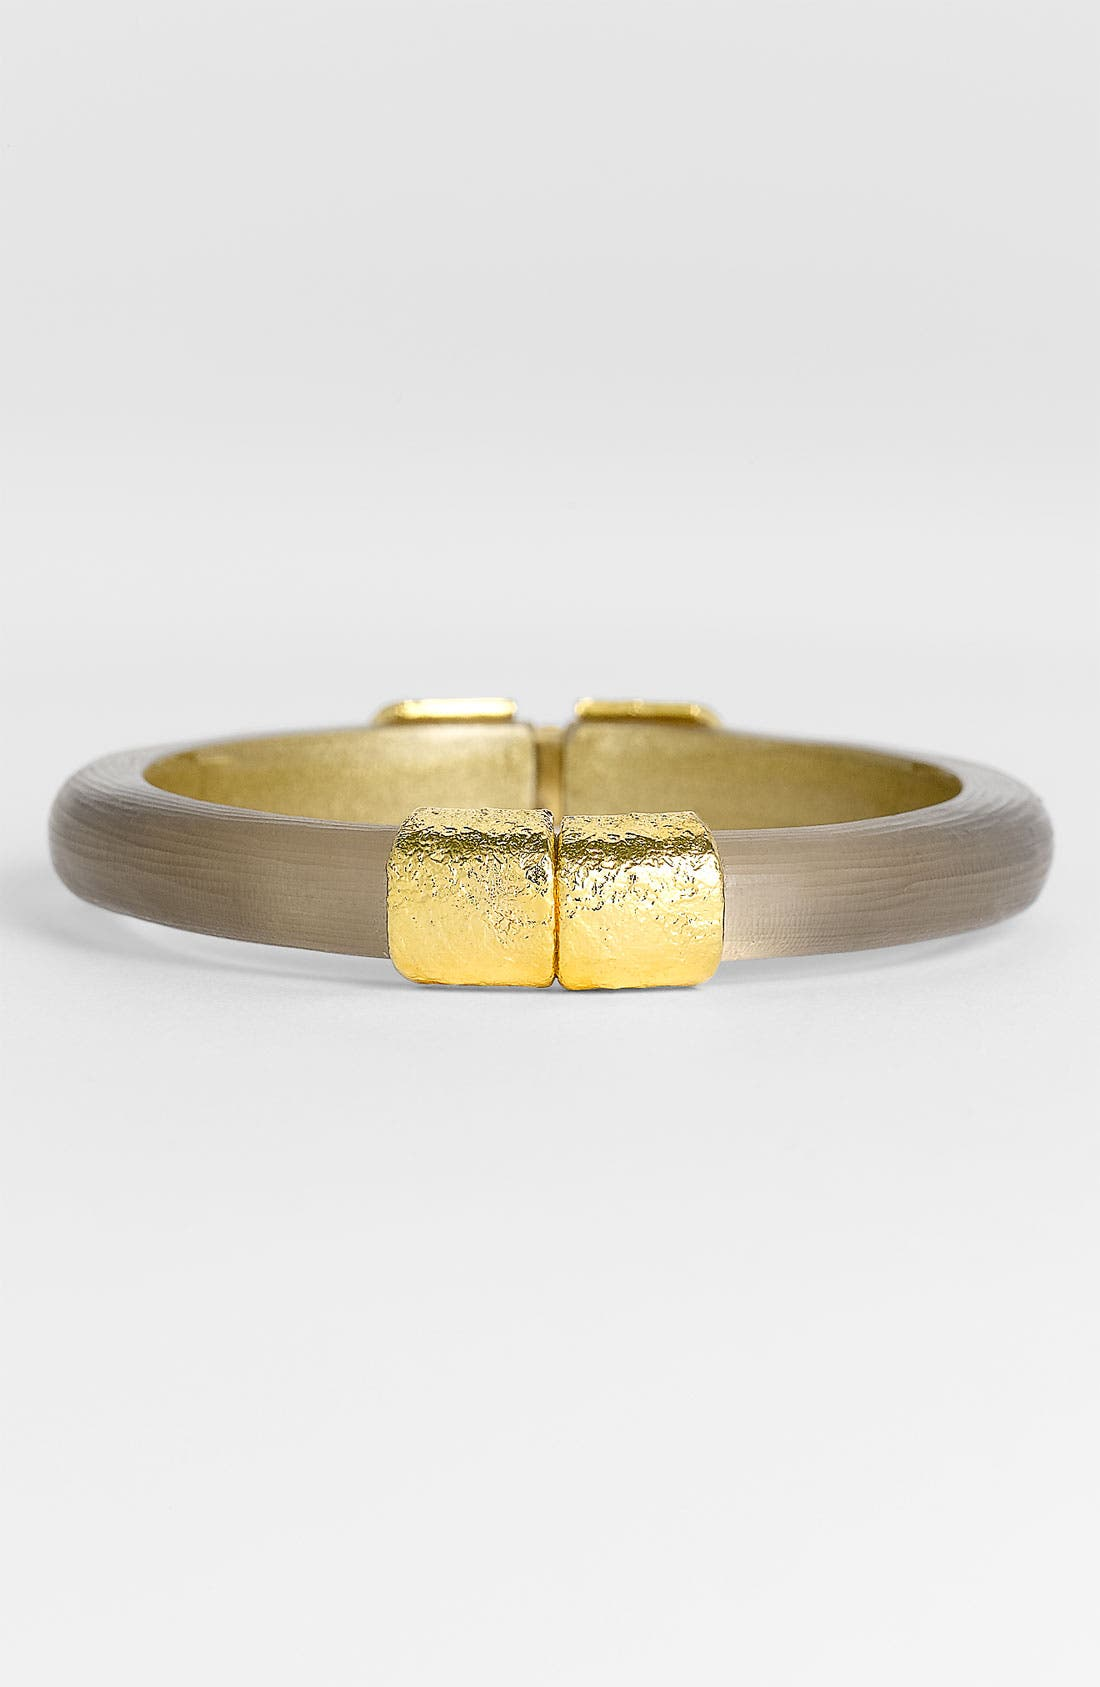 Main Image - Alexis Bittar 'Lucite®' Small Hinged Bracelet